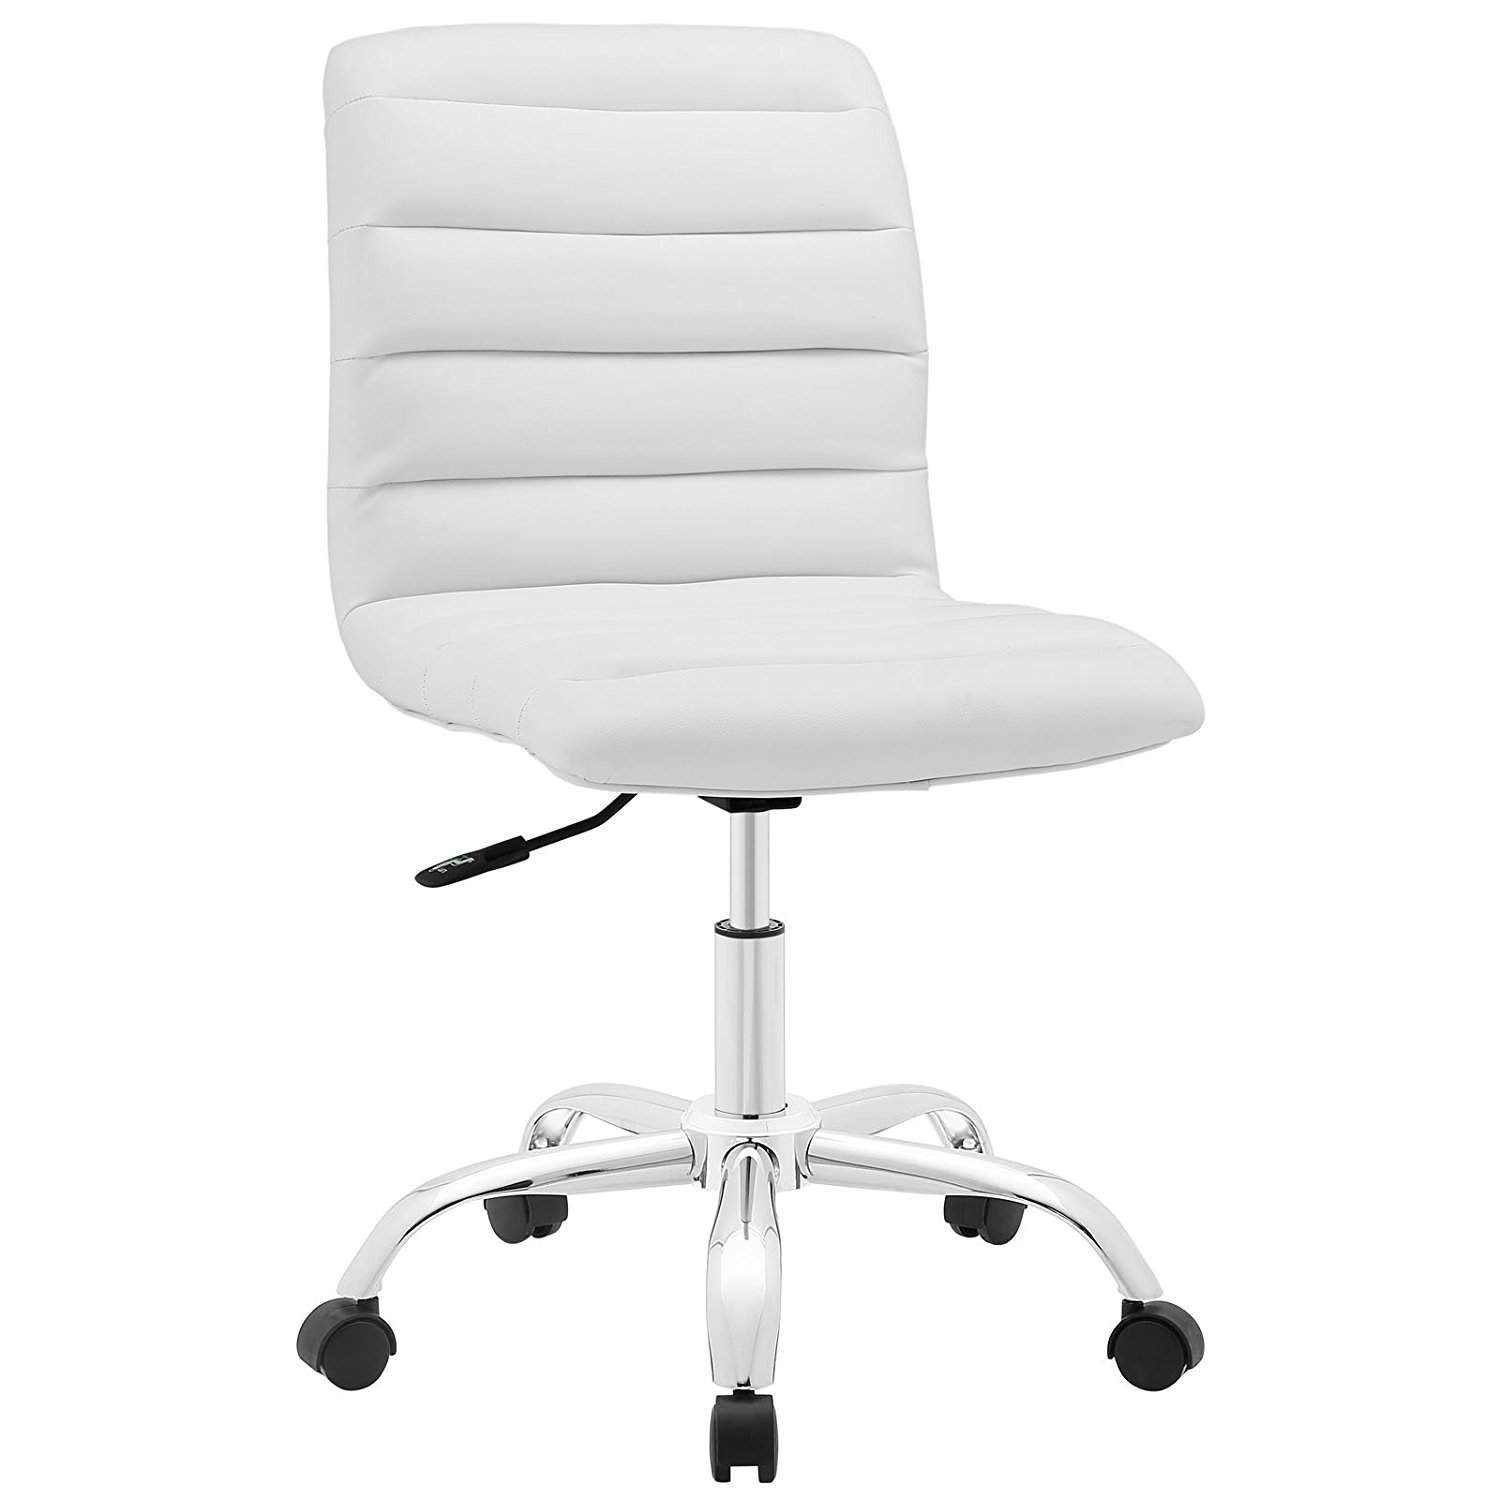 Best ideas about Cheap Desk Chair . Save or Pin Top 10 Best Dorm Room Chairs 2018 Now.